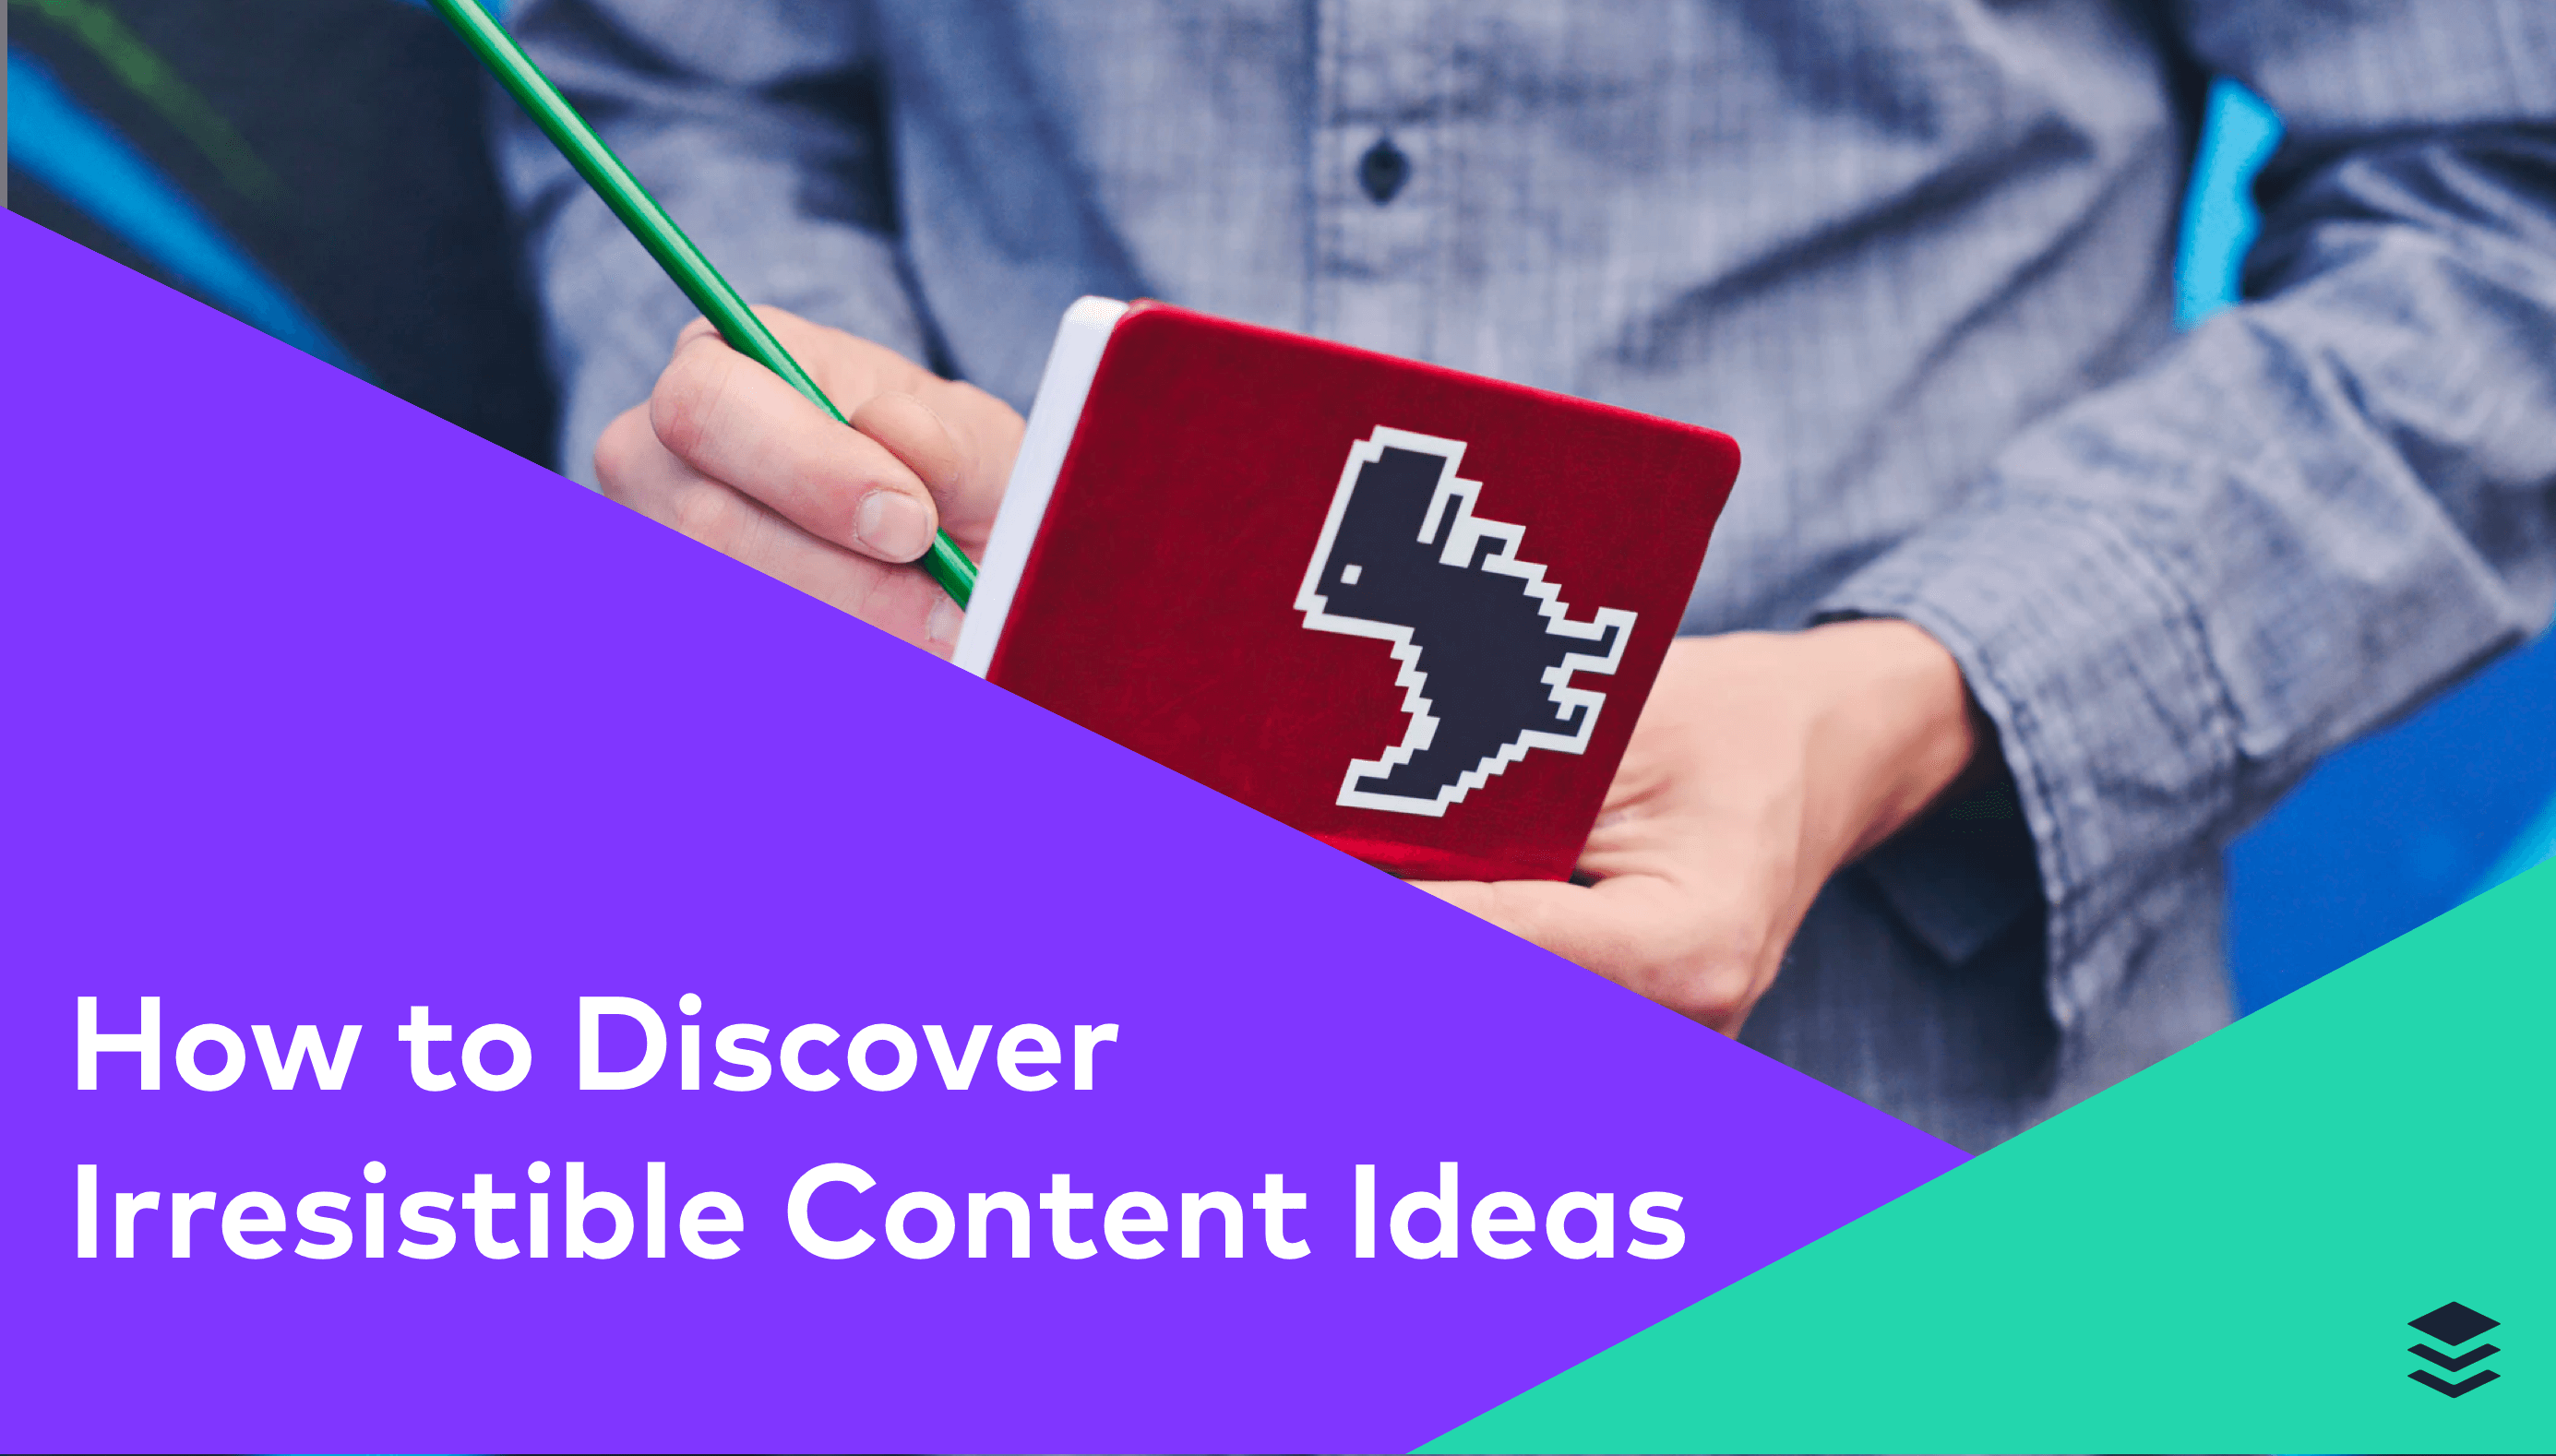 How to Discover Irresistible Content Ideas Using Reddit